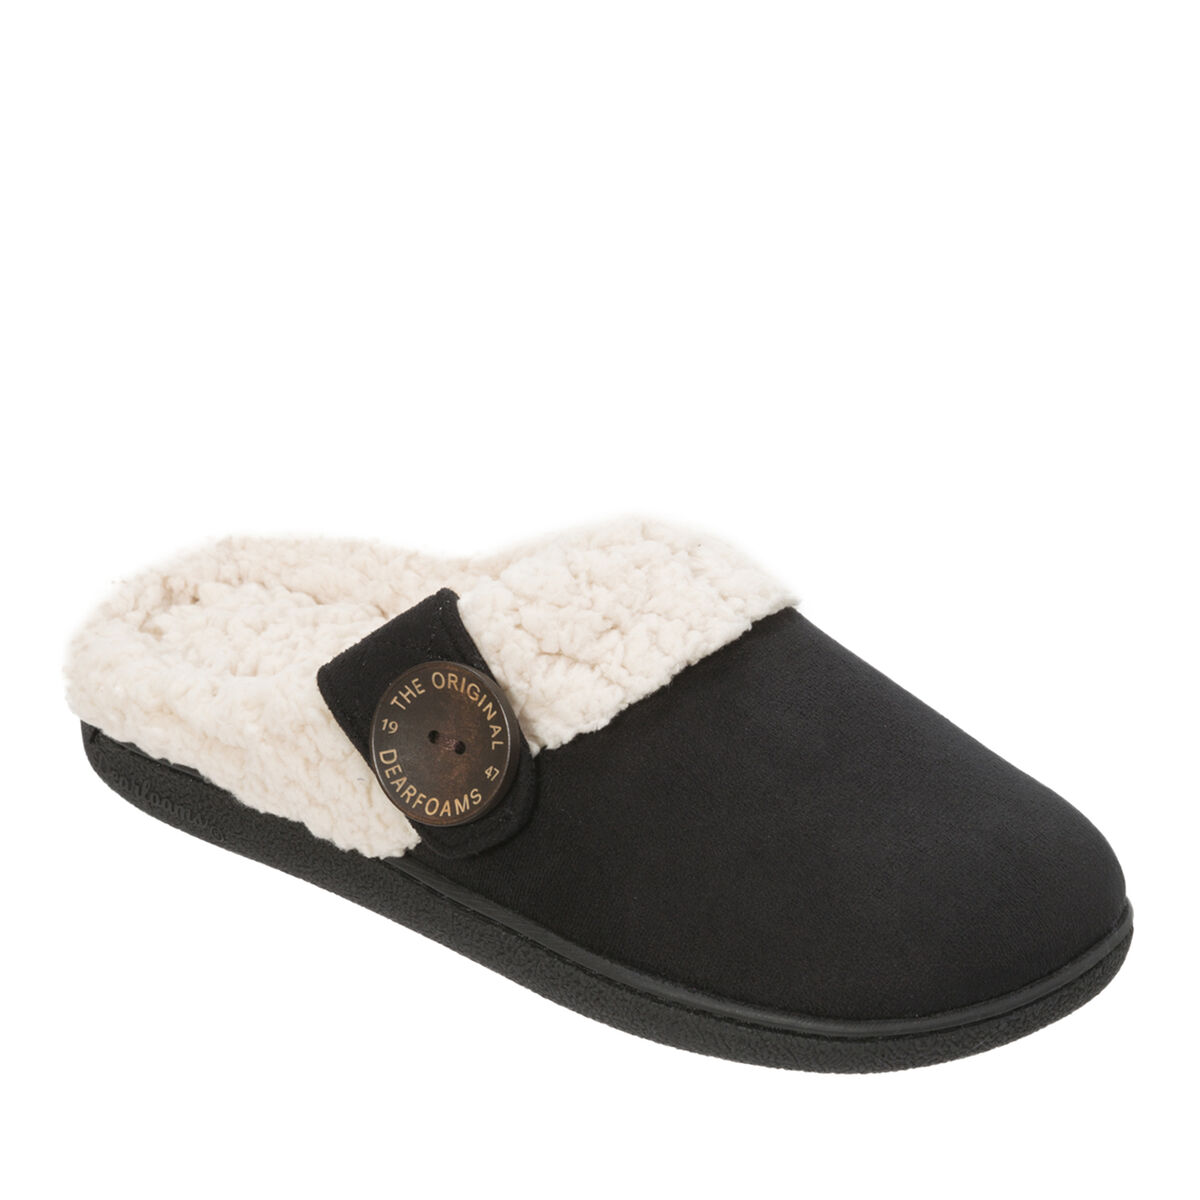 Women's Microsuede Clog with Button Tab